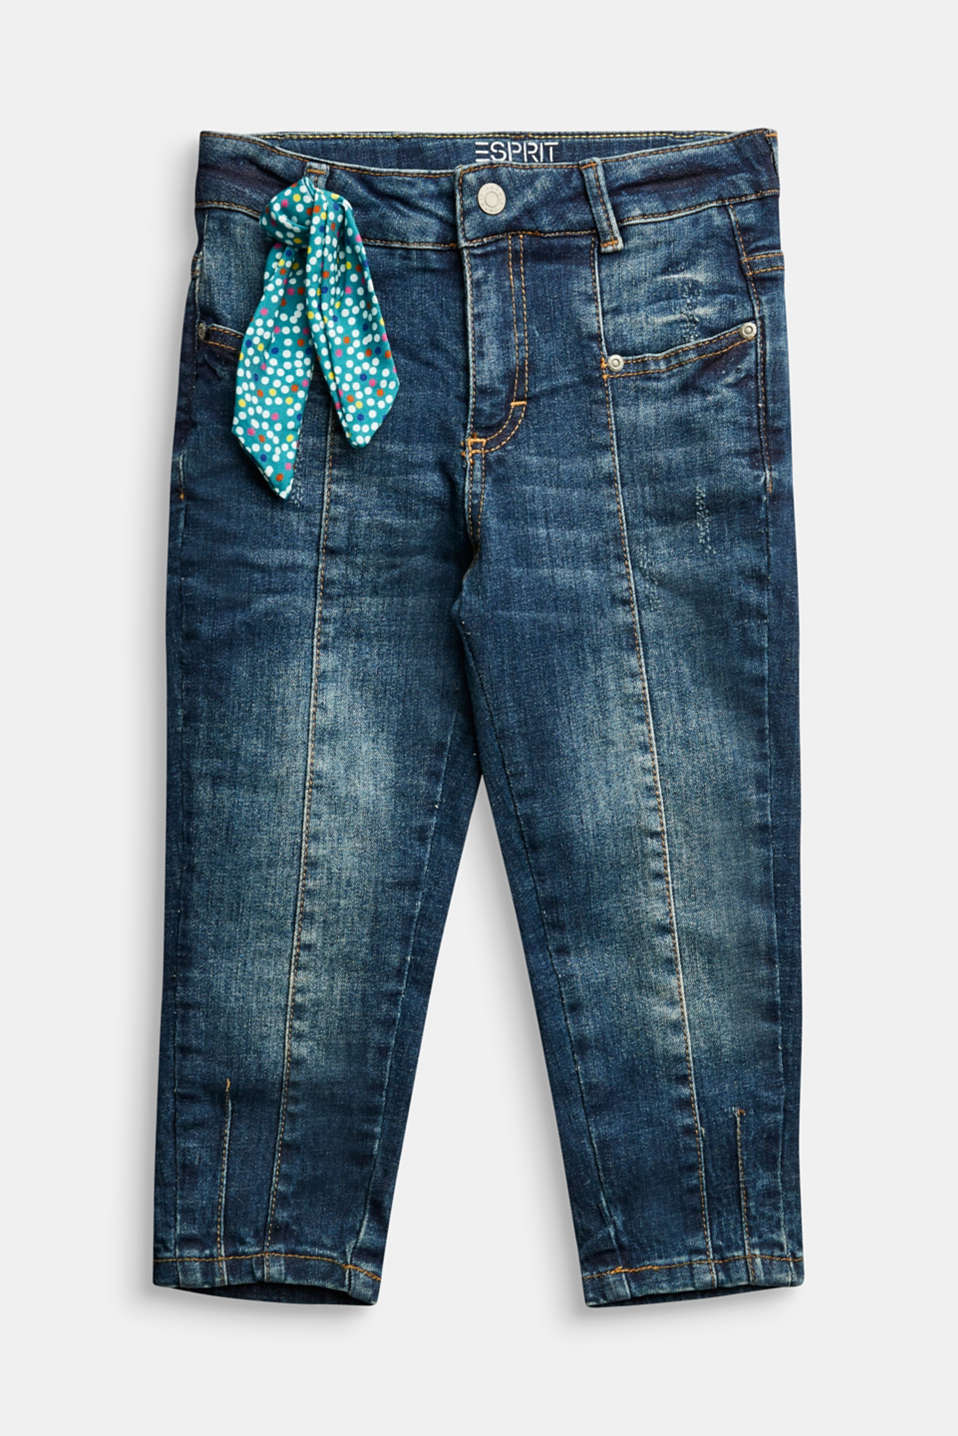 Esprit - Stretch jeans with a tie detail